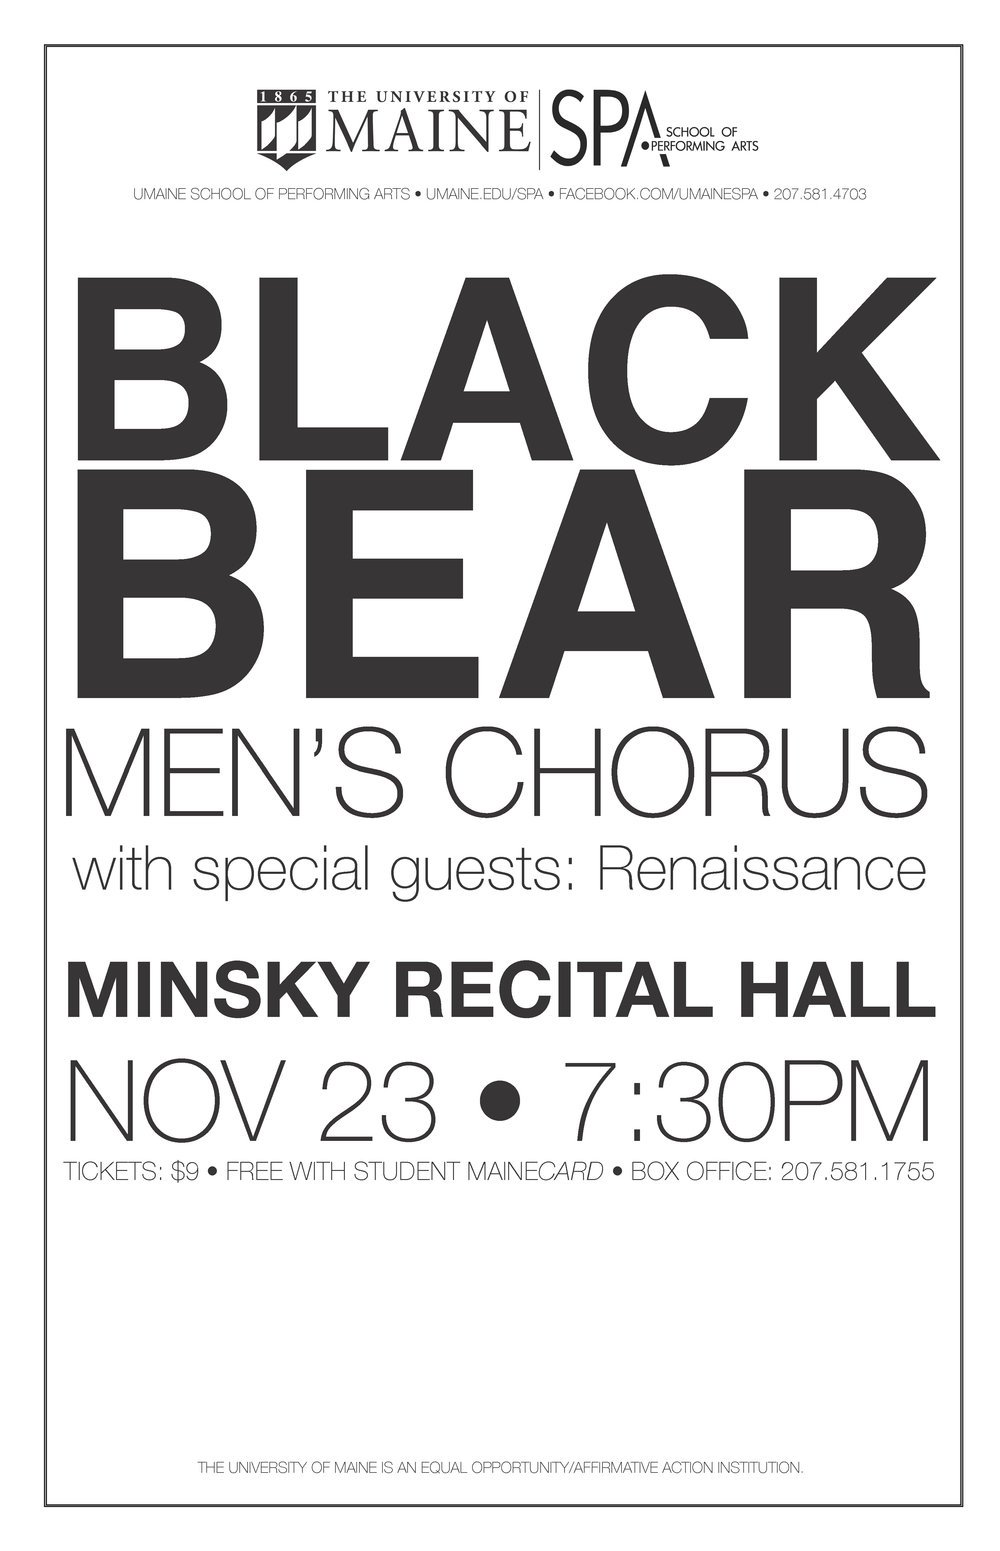 University of Maine, School of Performing Arts, Black Bear Men's Chorus